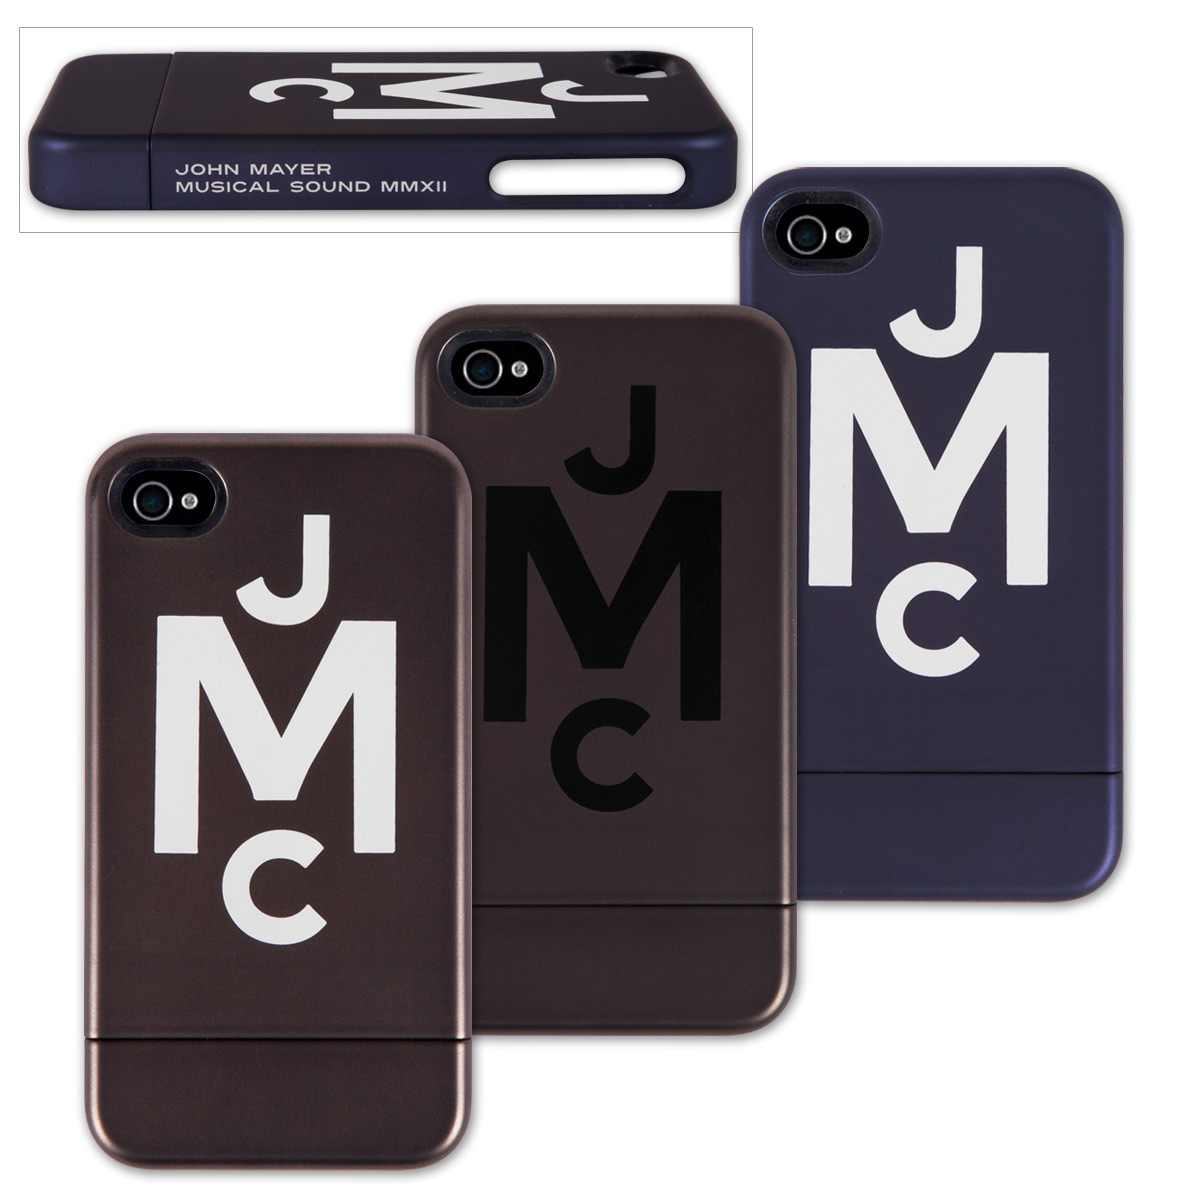 John Mayer JCM Incase iPhone 4 Cases